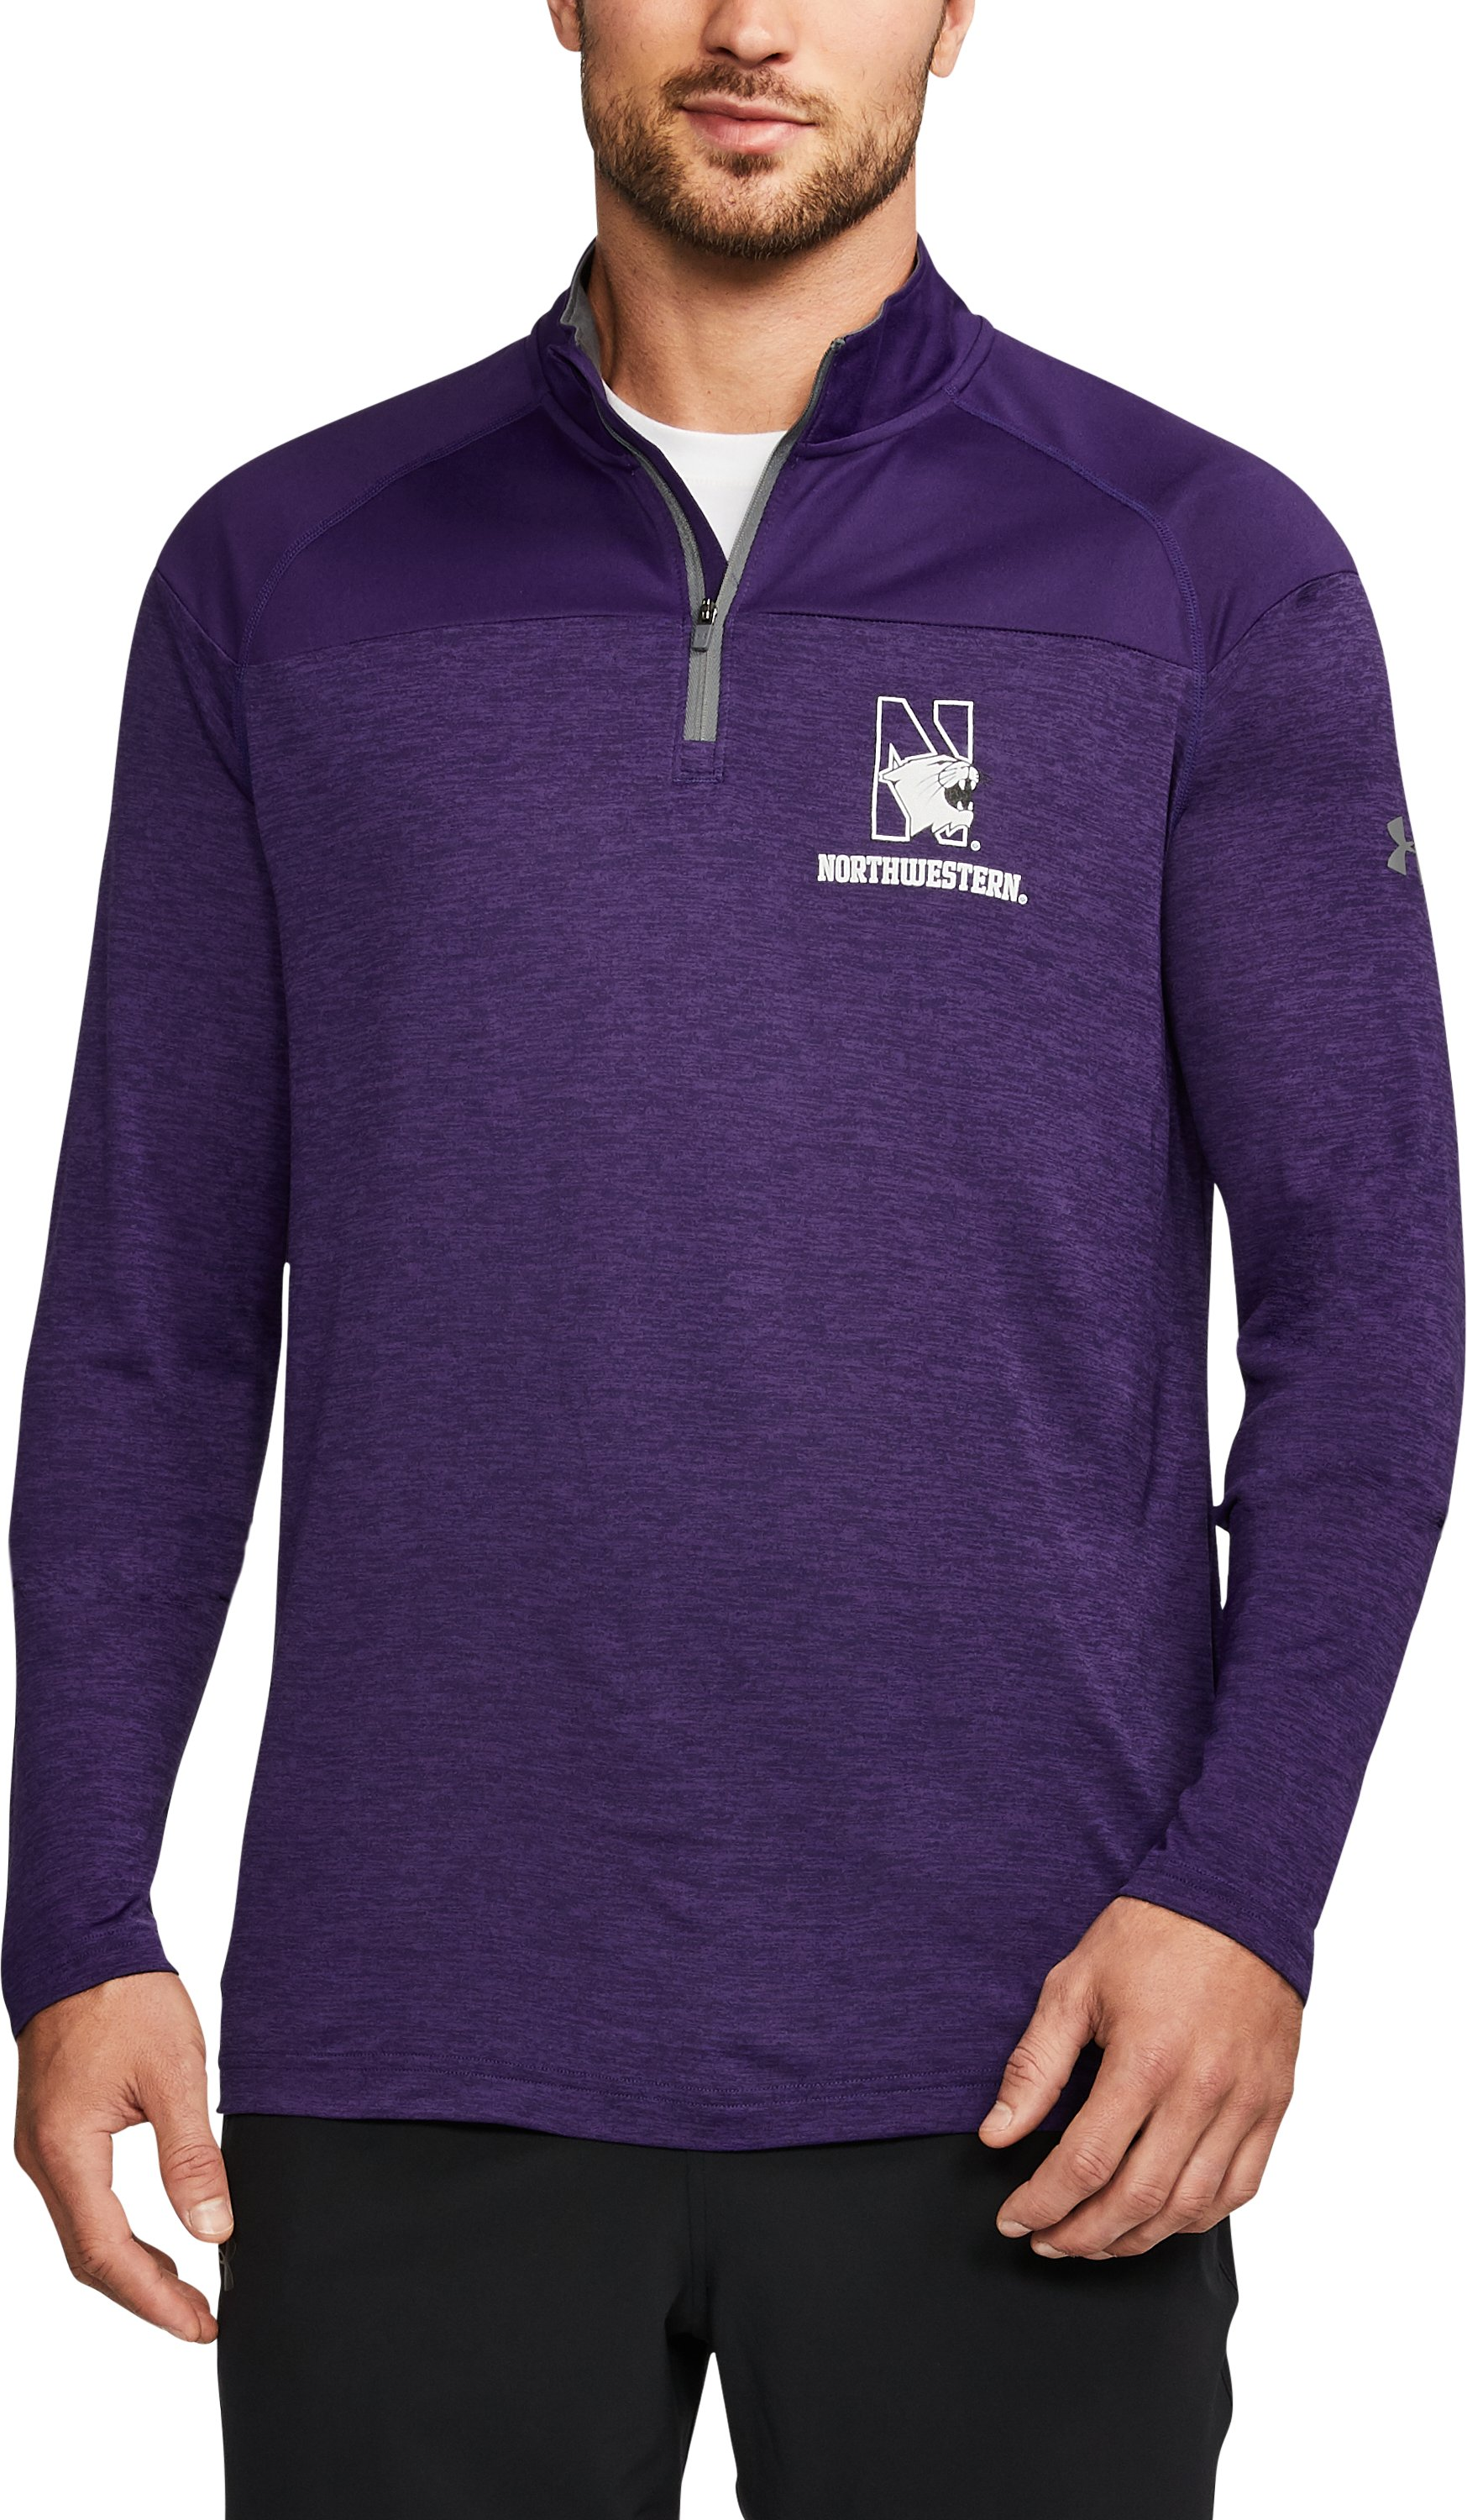 Men's Northwestern ¼ Zip, Purple